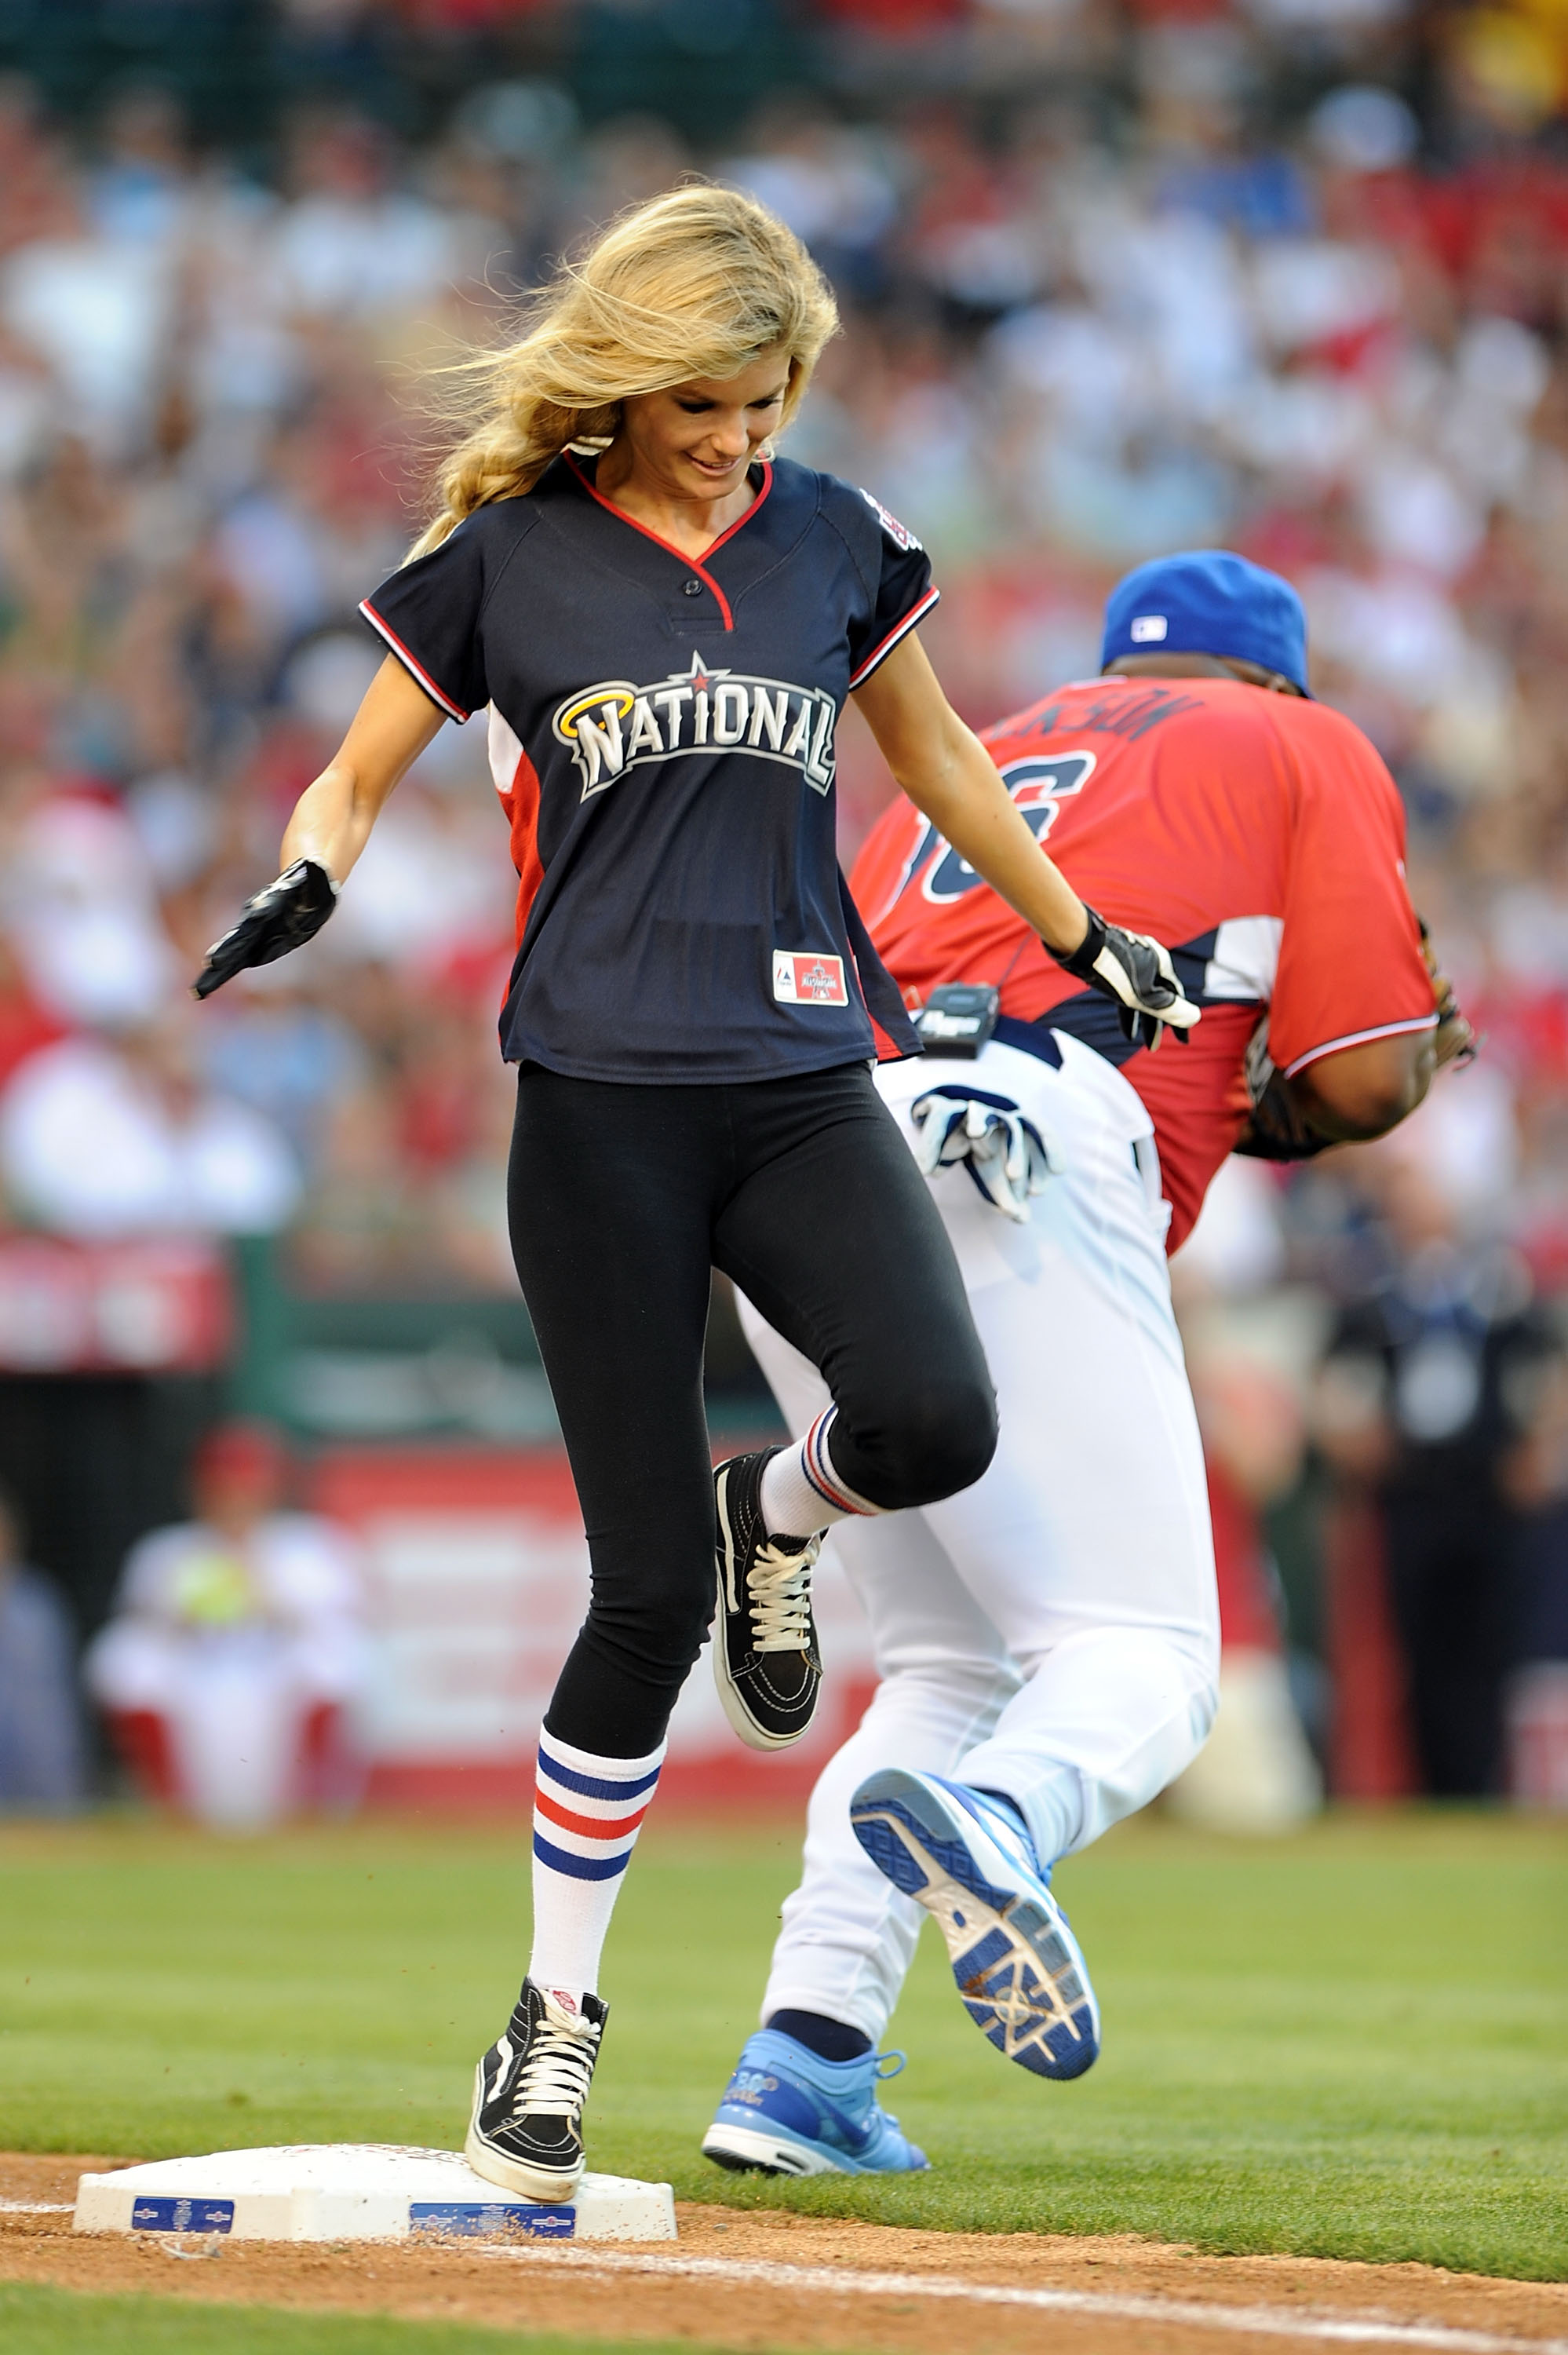 38280_Marisa_Miller_MLB_All_Star_Celebrity_Softball_Game_14_122_452lo.jpg